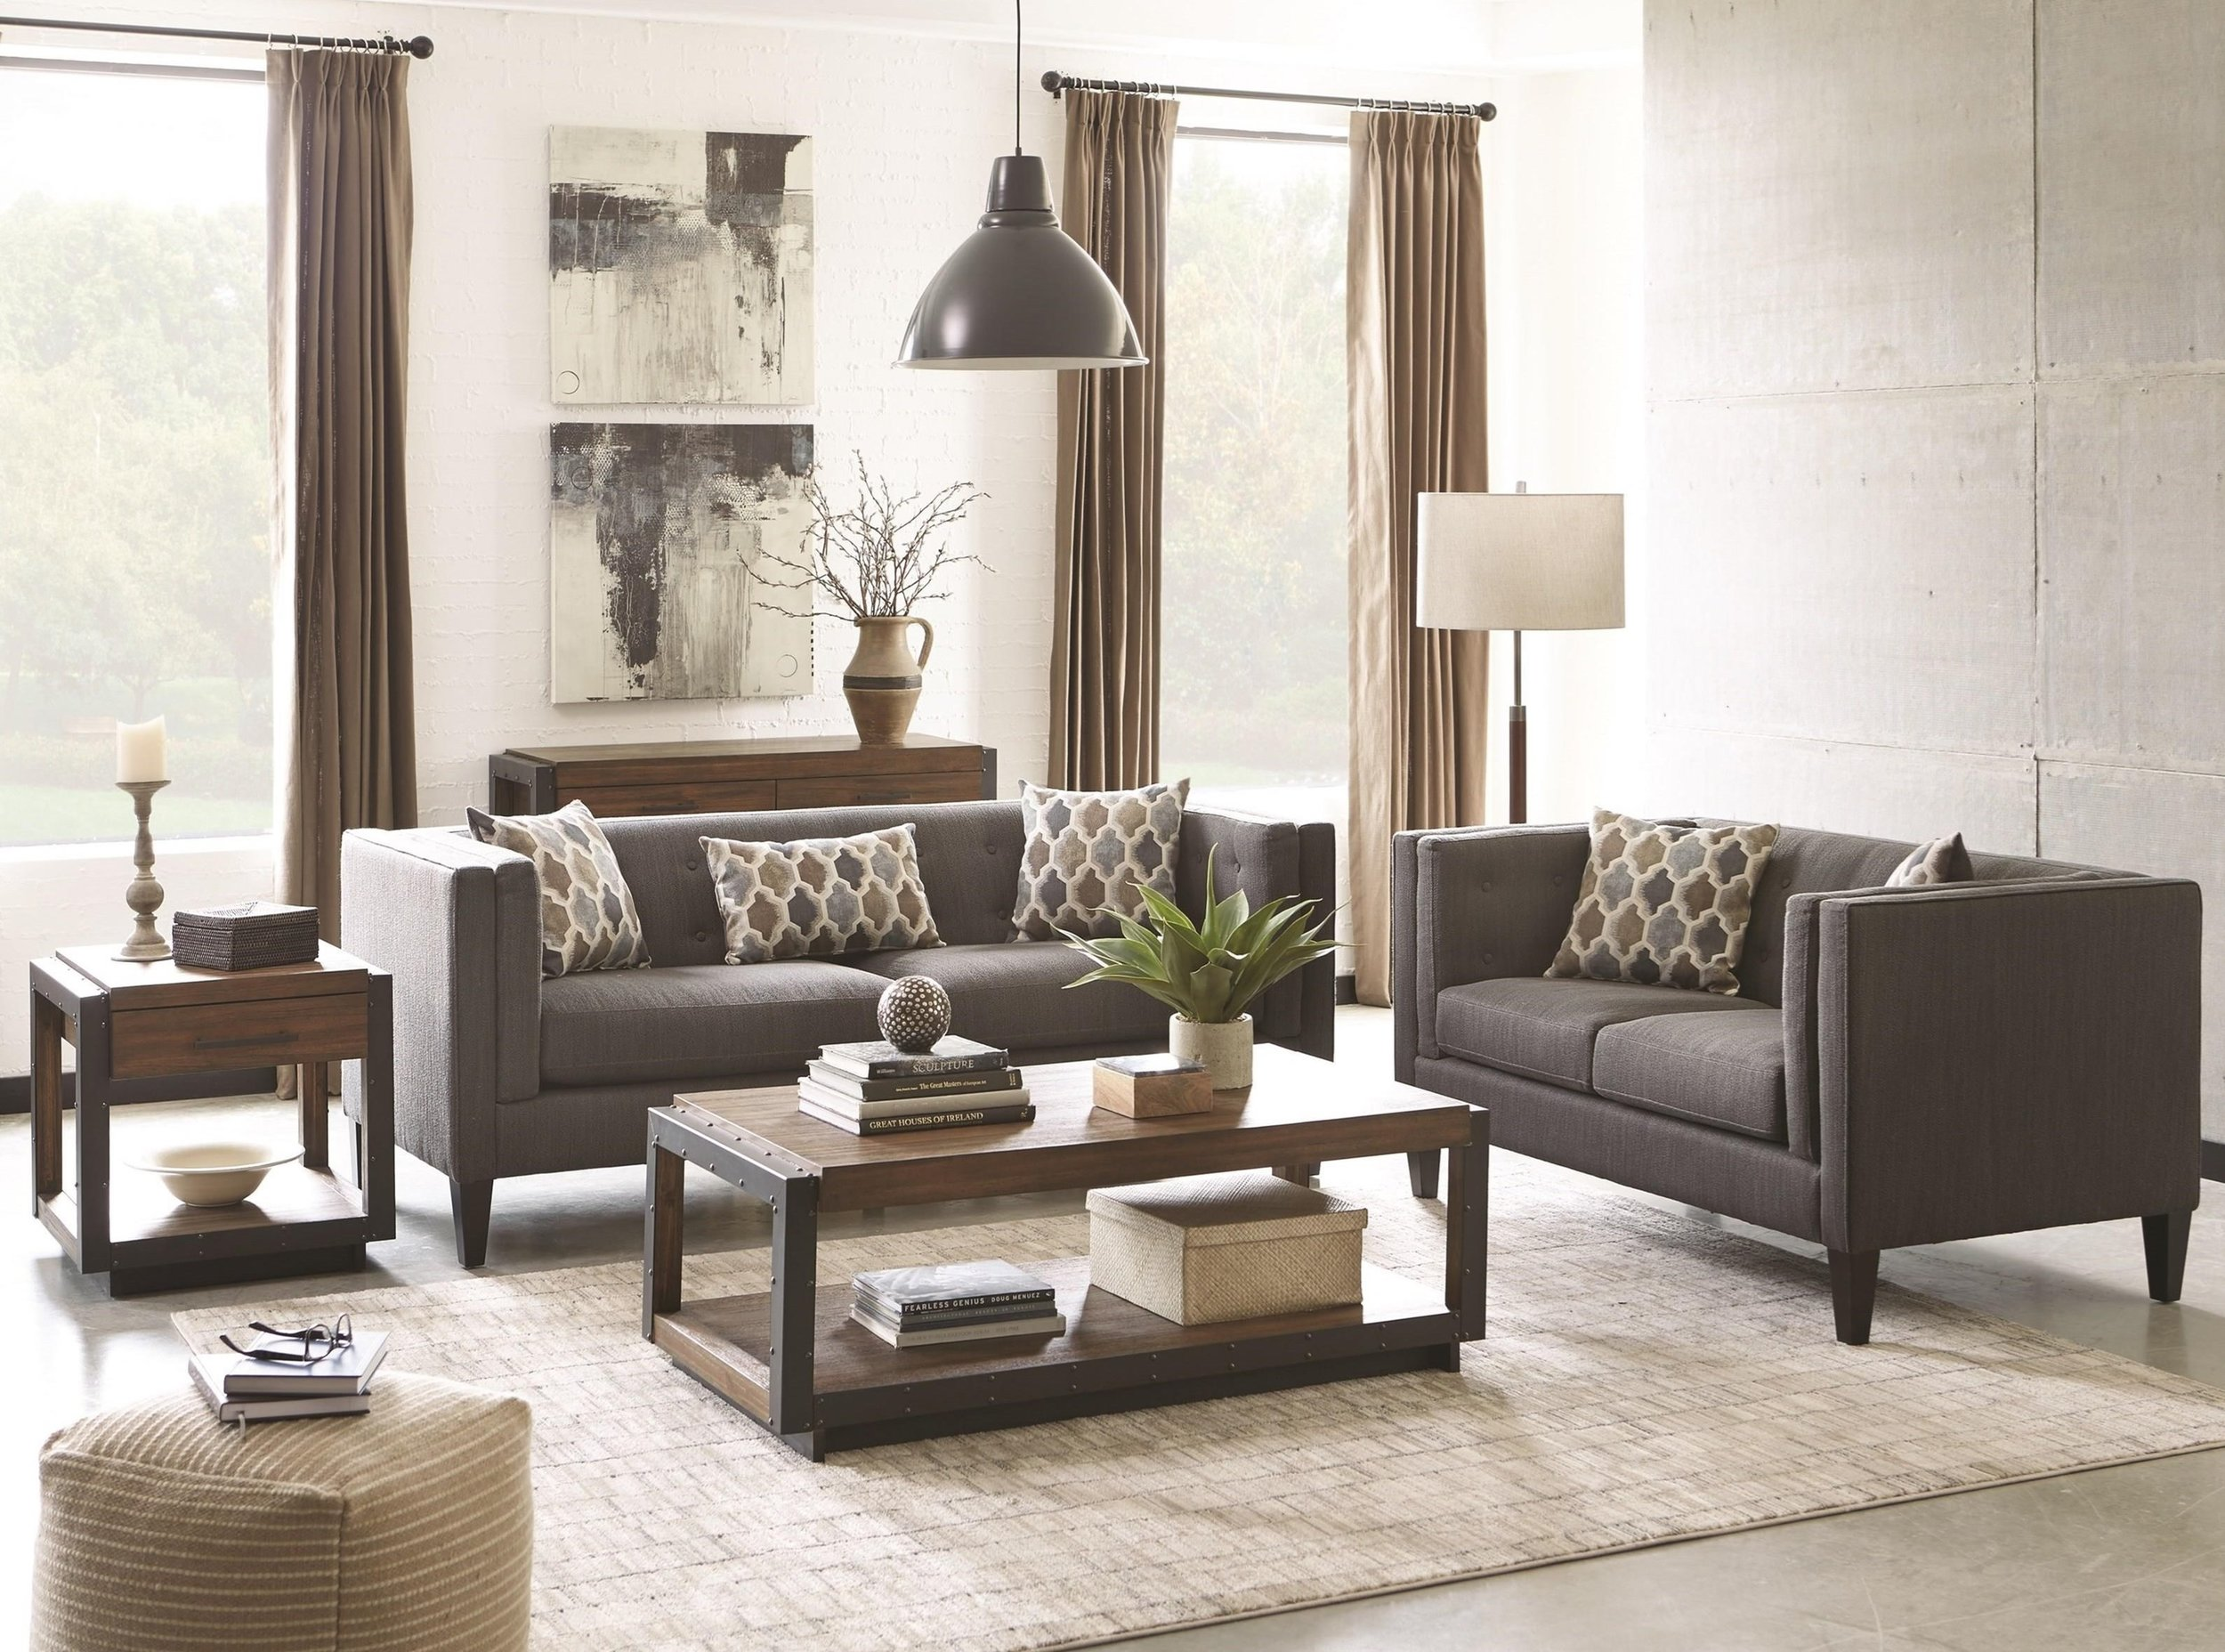 Sawyer-Sofa-Scott-Living.jpg